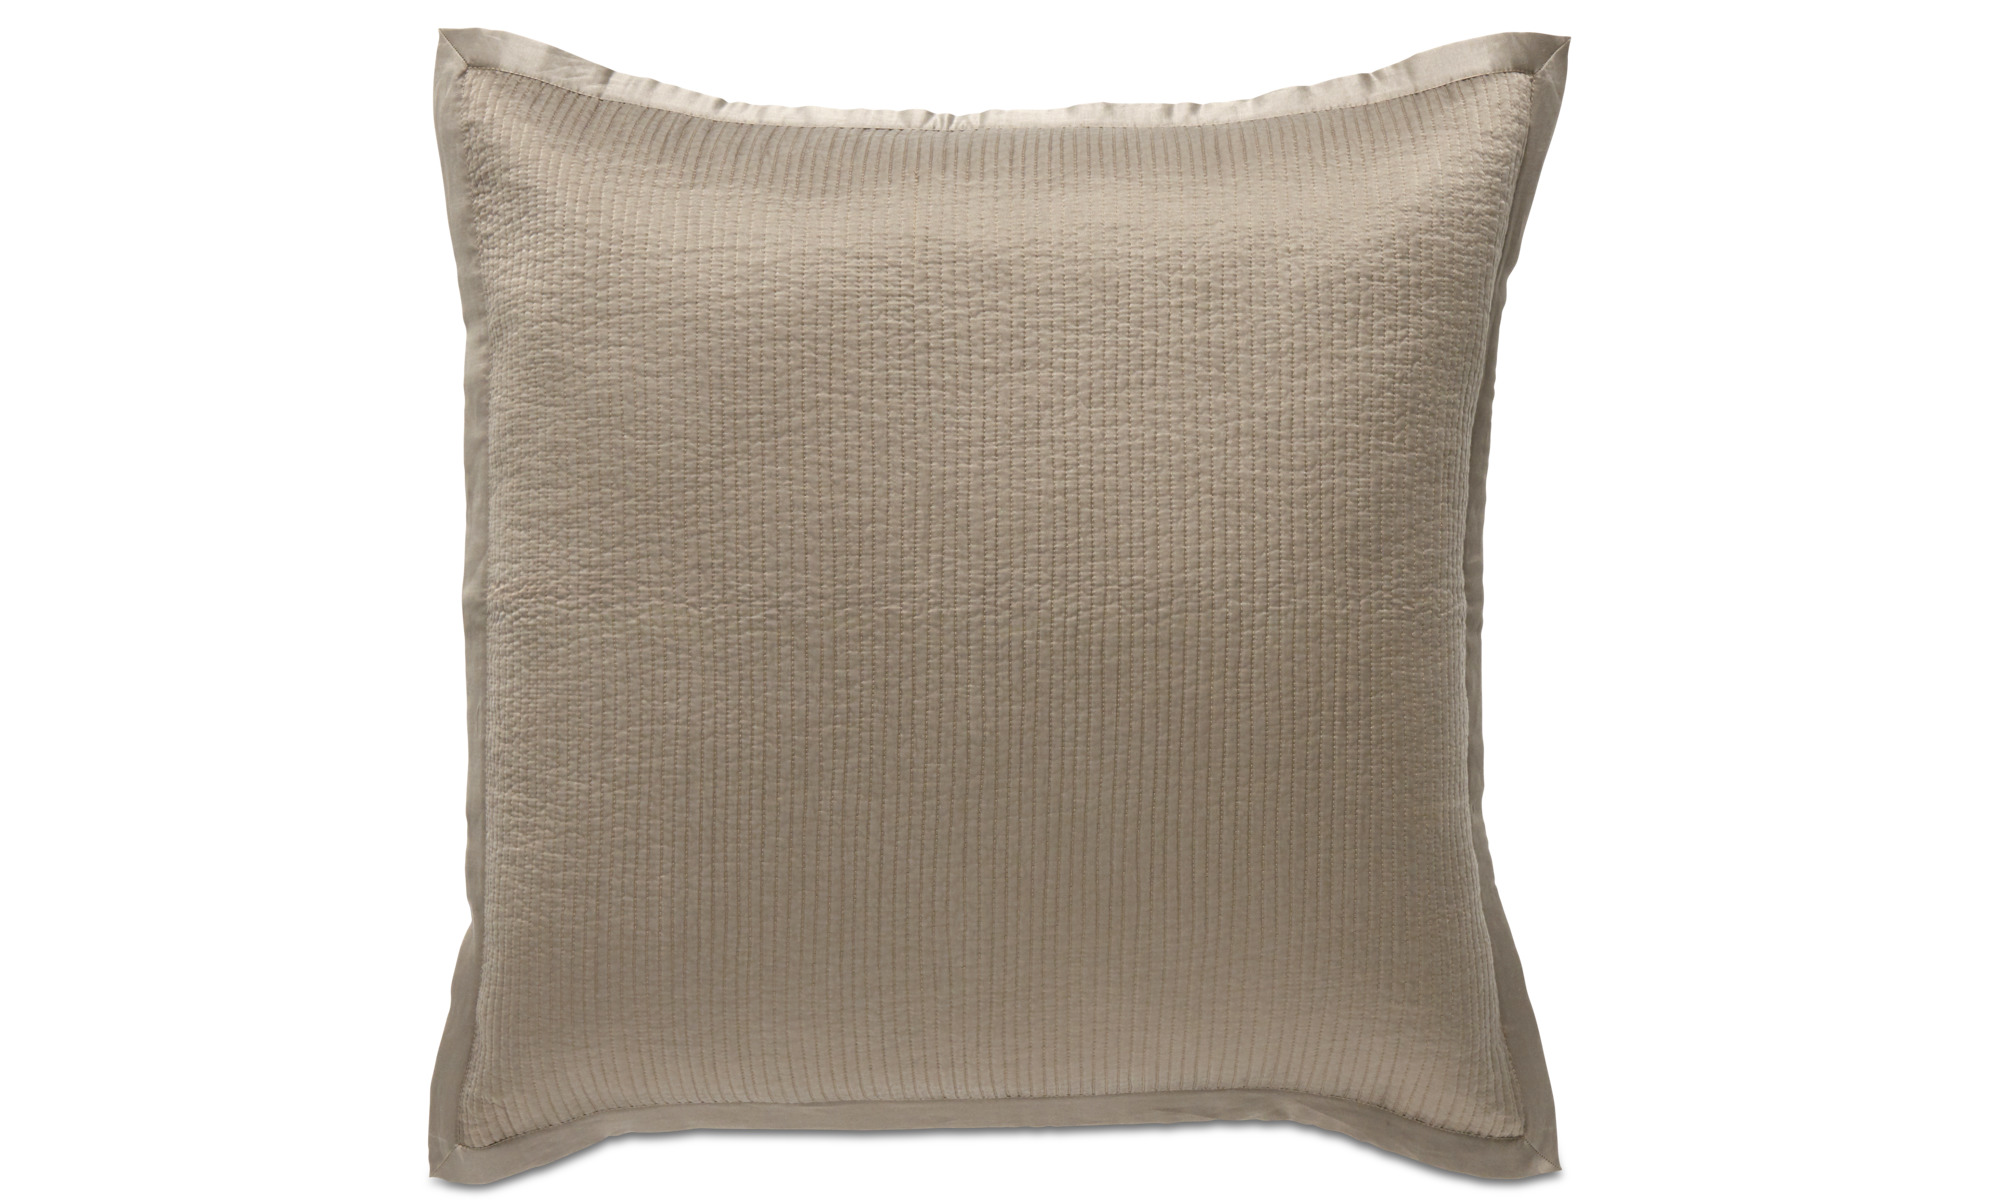 Cushions - Pause cushion - Grey - Fabric